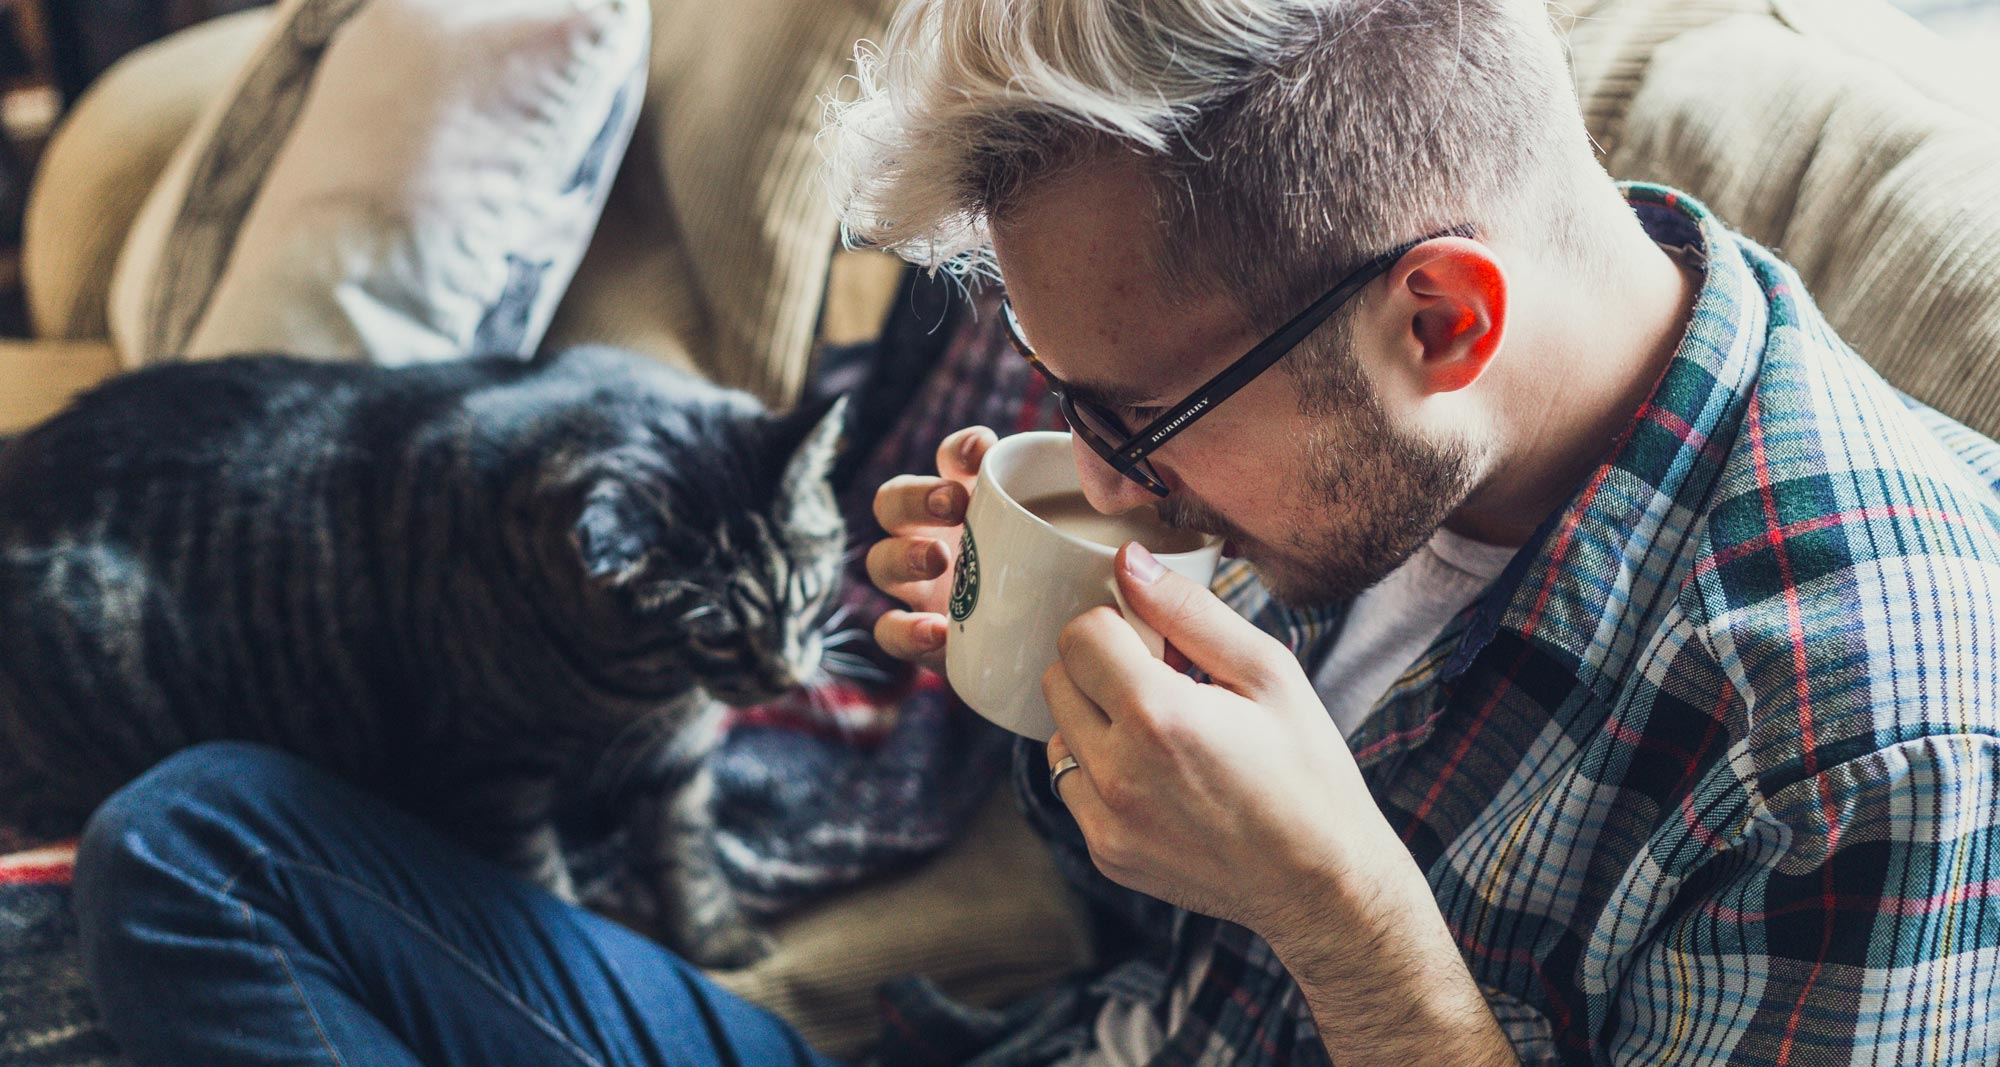 How to Register an Emotional Support Cat